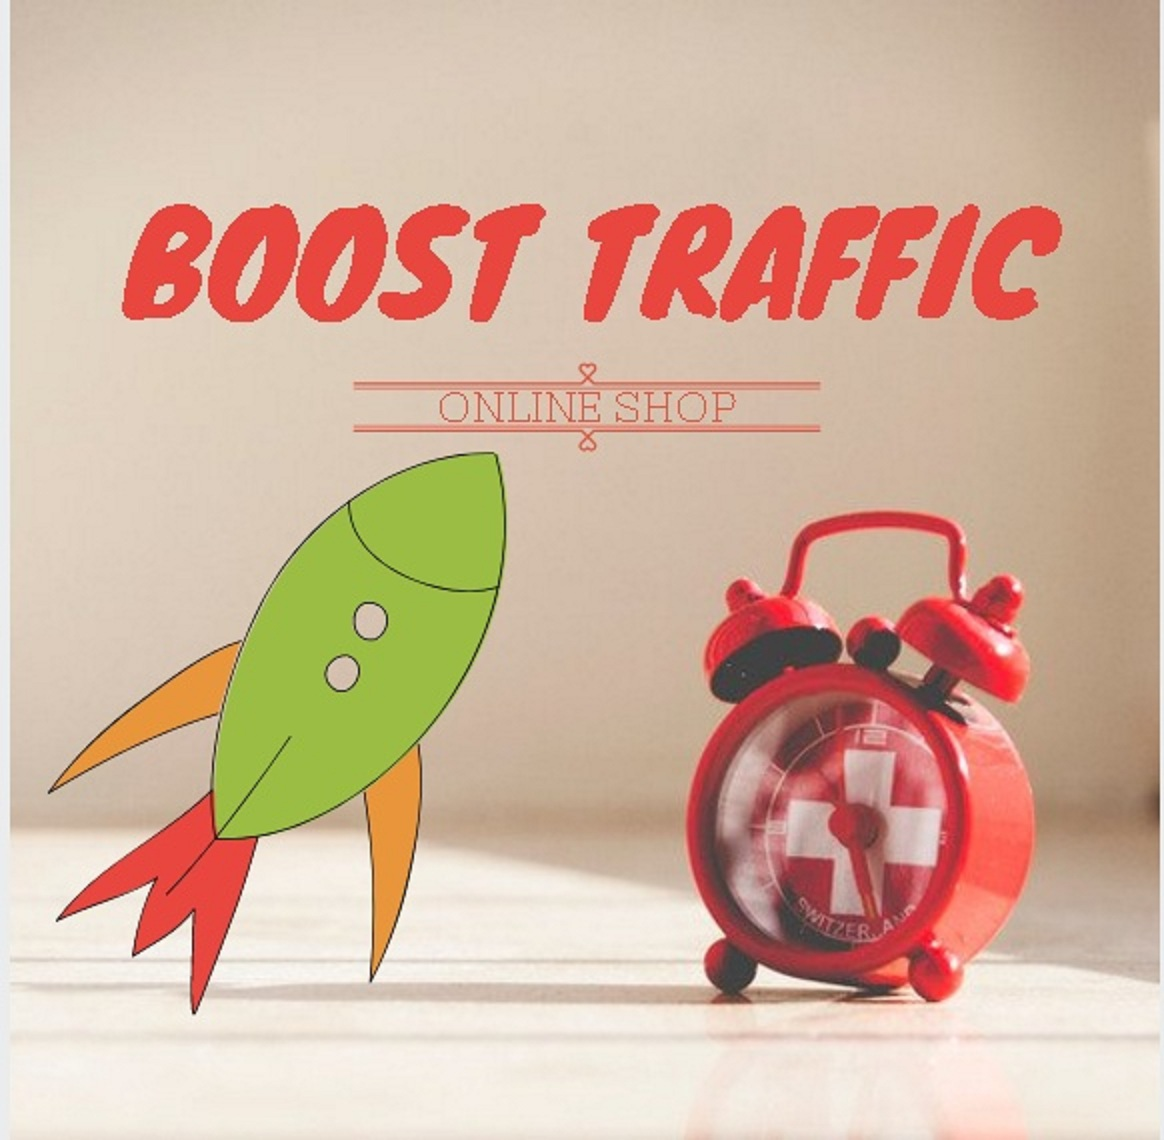 boost Quality SEO Traffic to alibaba shopify Etsy Ebay Amazon ecommerce shop listing Product